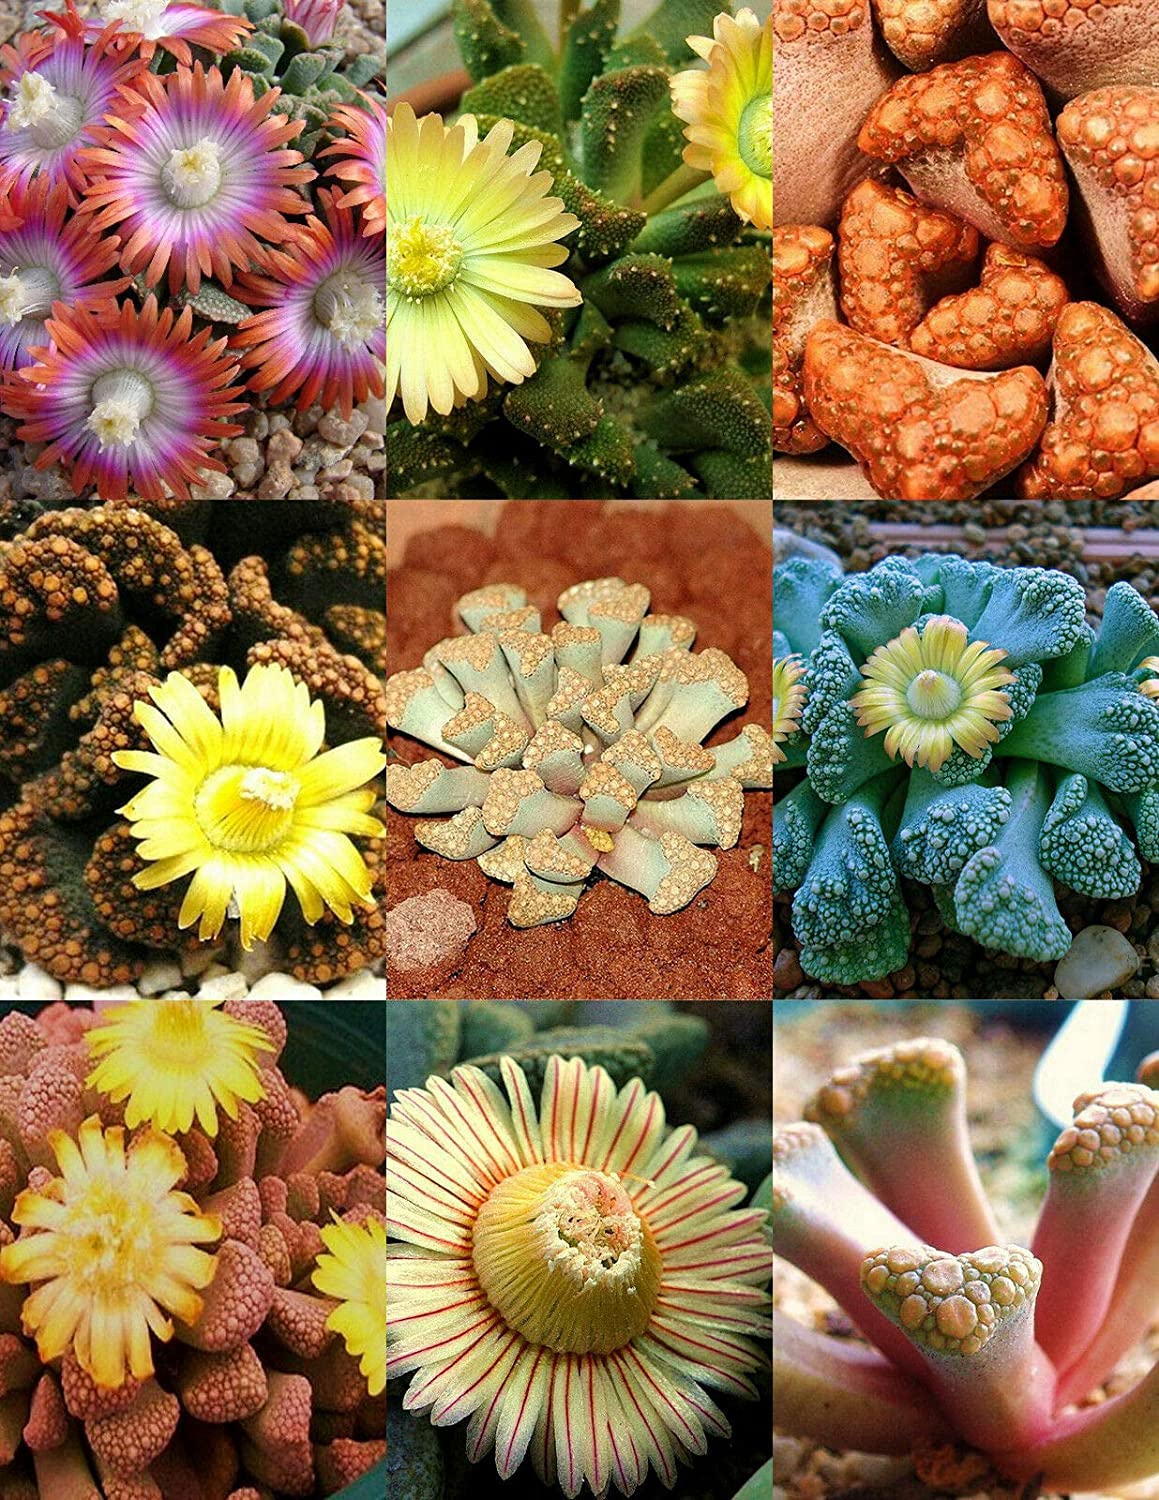 SEAL limited product TITANOPSIS Mix Succulent Cactus SALENEW very popular Mixed Plant Stones Living Rocks